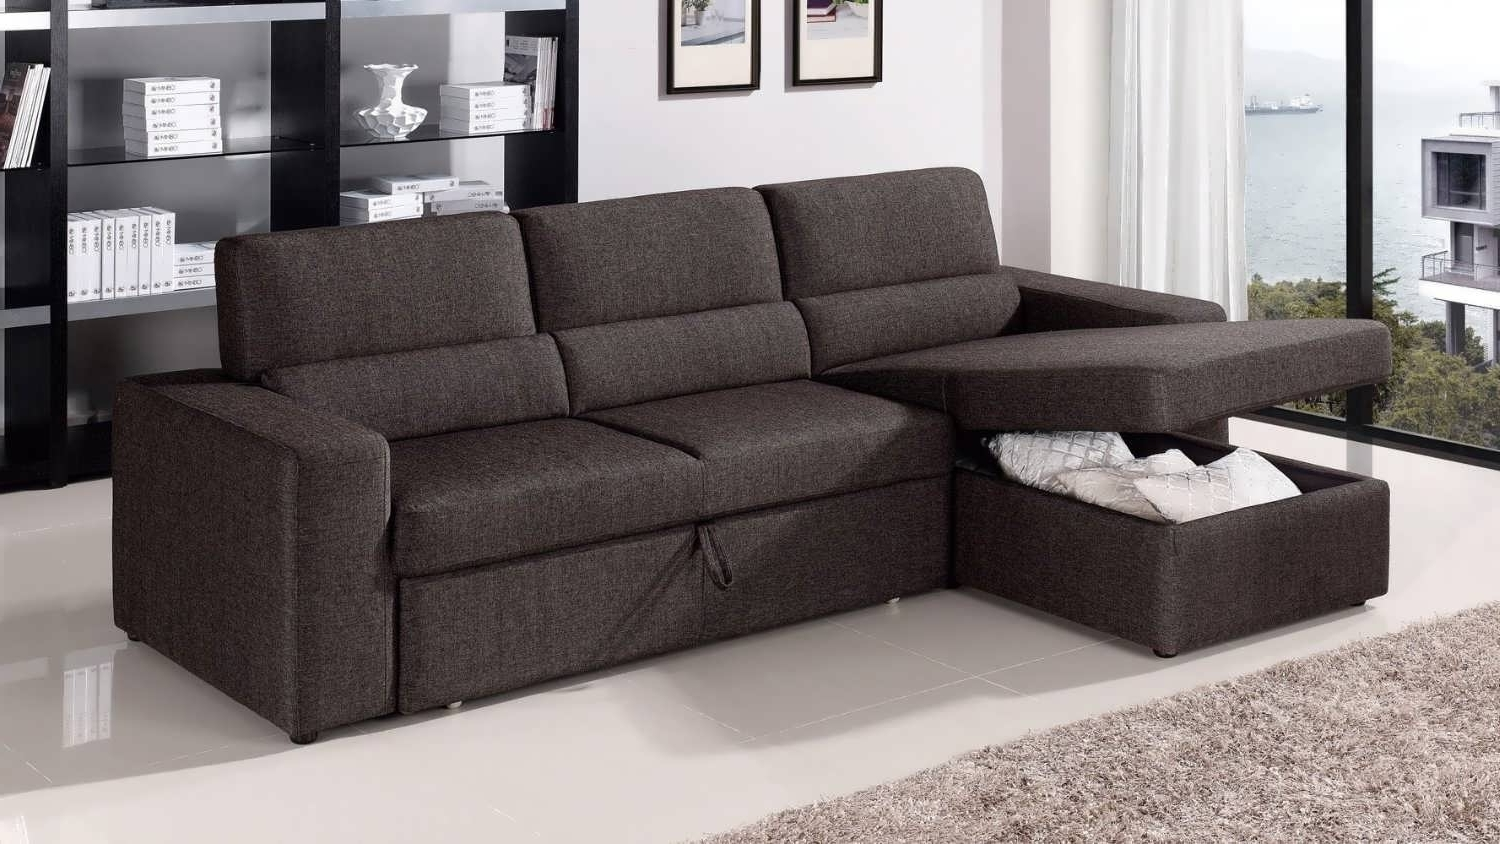 Well Known Sleeper Sectionals With Chaise Inside Sofa : Leather Sectional Sleeper Sofa Affordable Sectionals  (View 13 of 15)